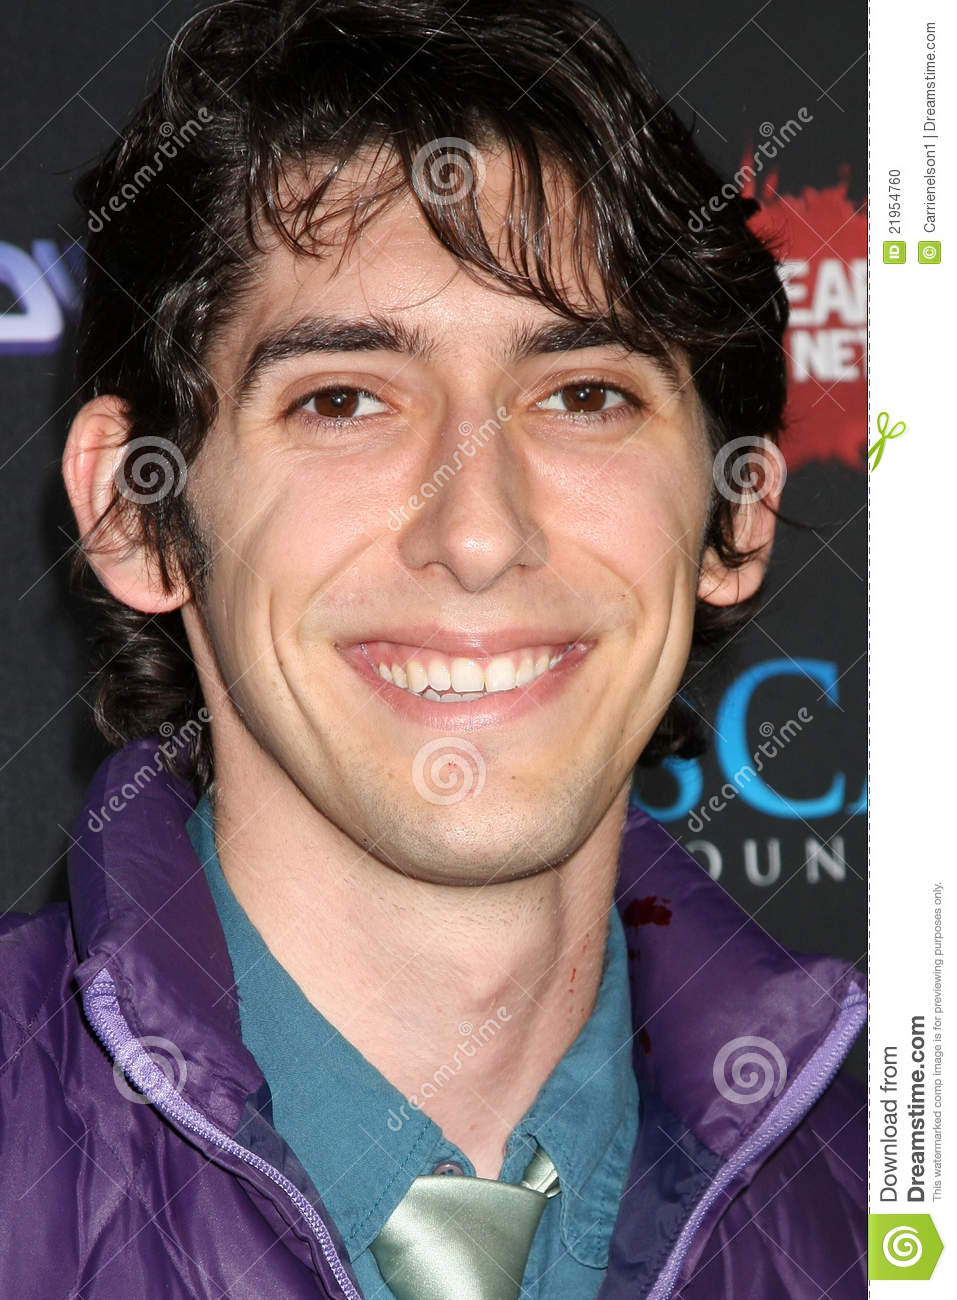 max landis doctor who